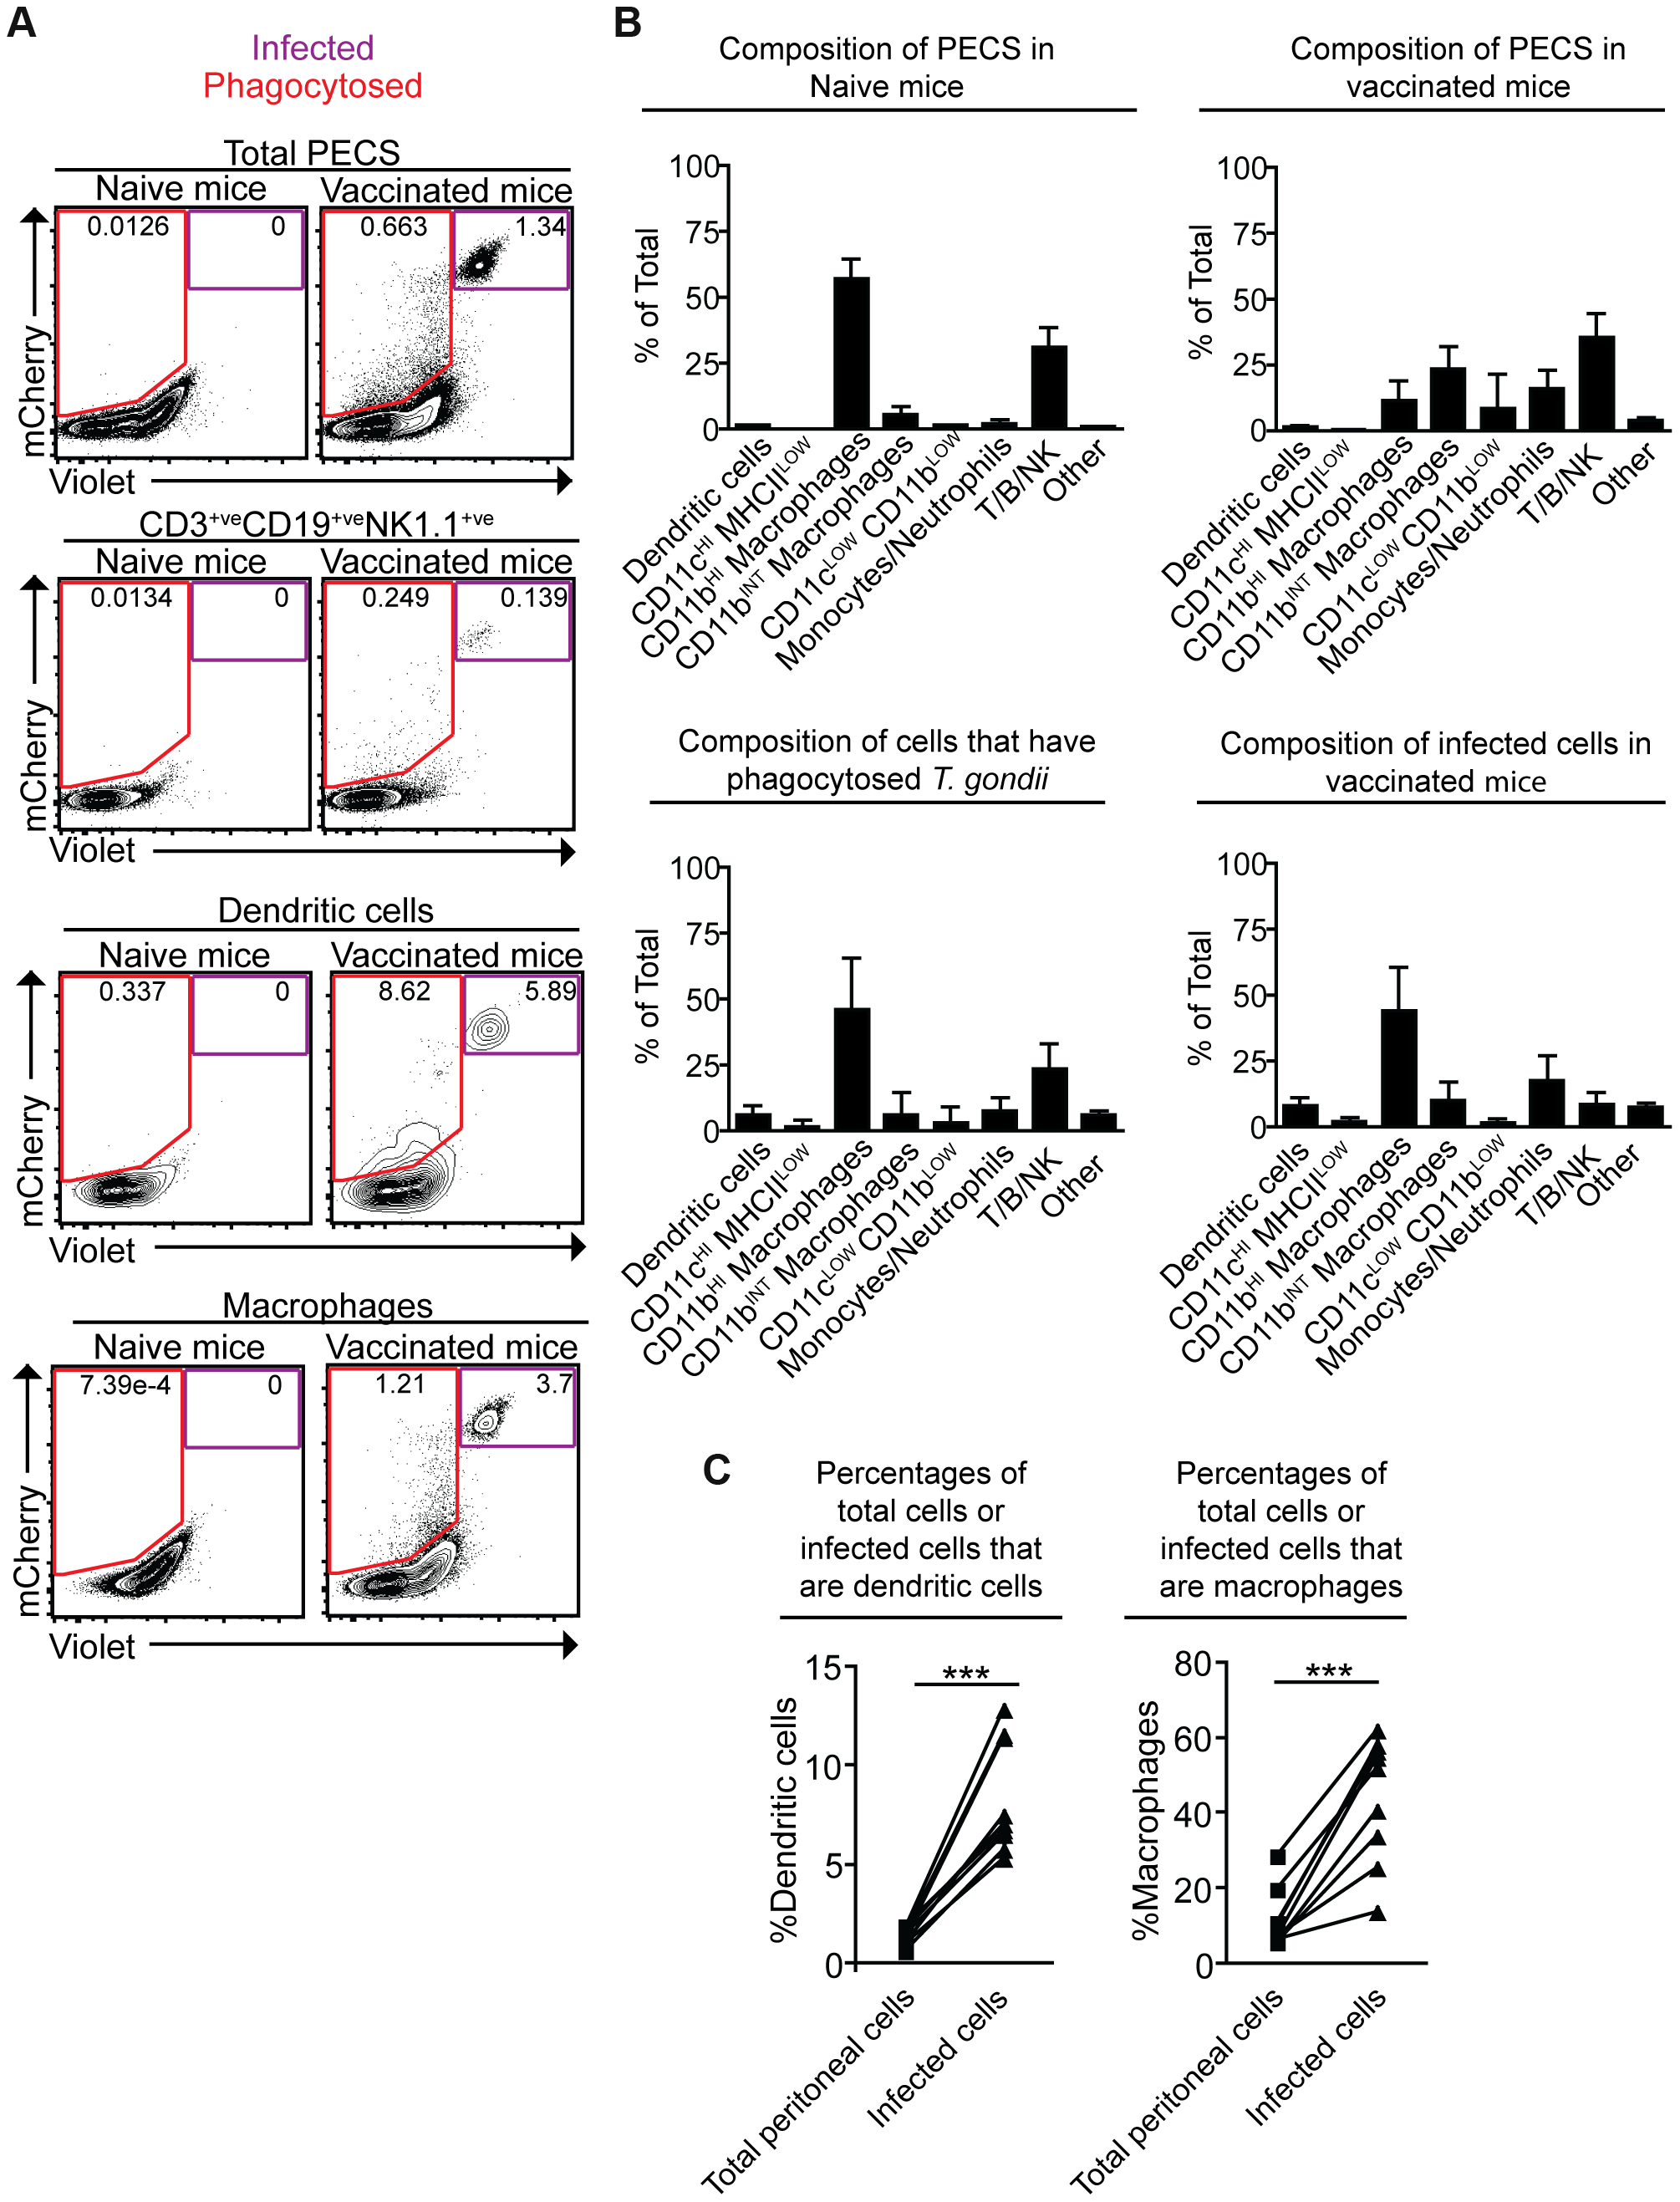 Composition of total cell populations, mCherry<sup>+ve</sup>Violet<sup>−ve</sup> cell populations, and mCherry<sup>+ve</sup>Violet<sup>+ve</sup> populations from the PECS of naïve and vaccinated mice.